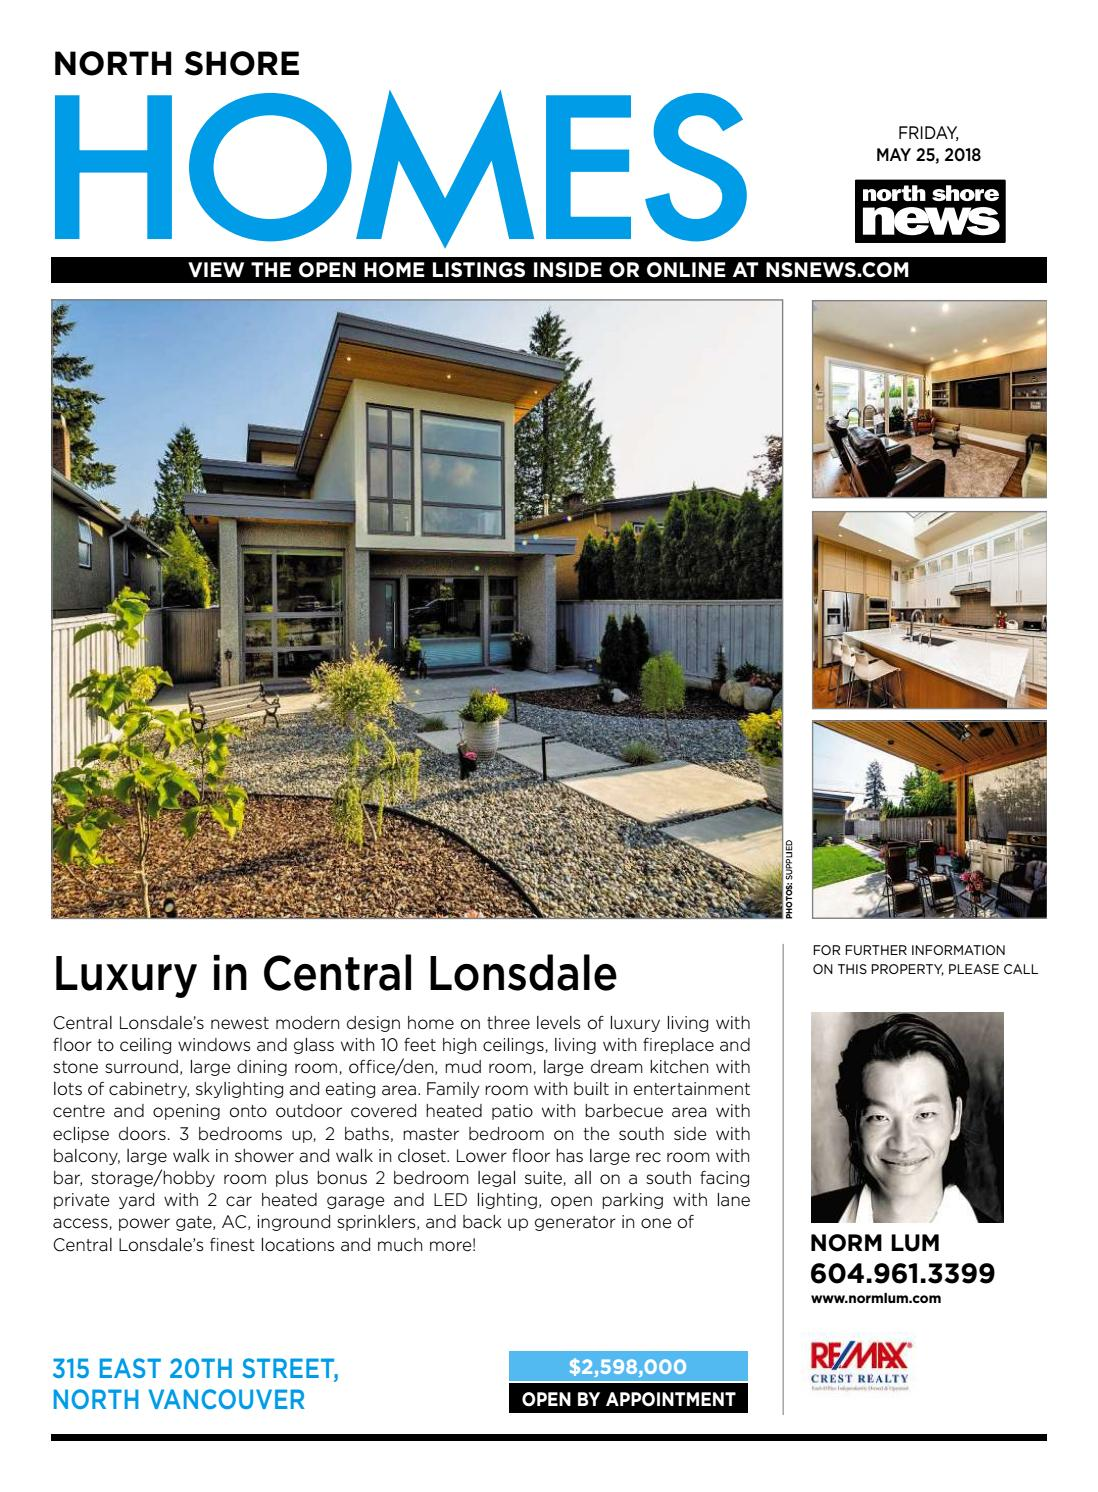 North Shore Homes Real Estate May 25 2018 by NSN Features - issuu